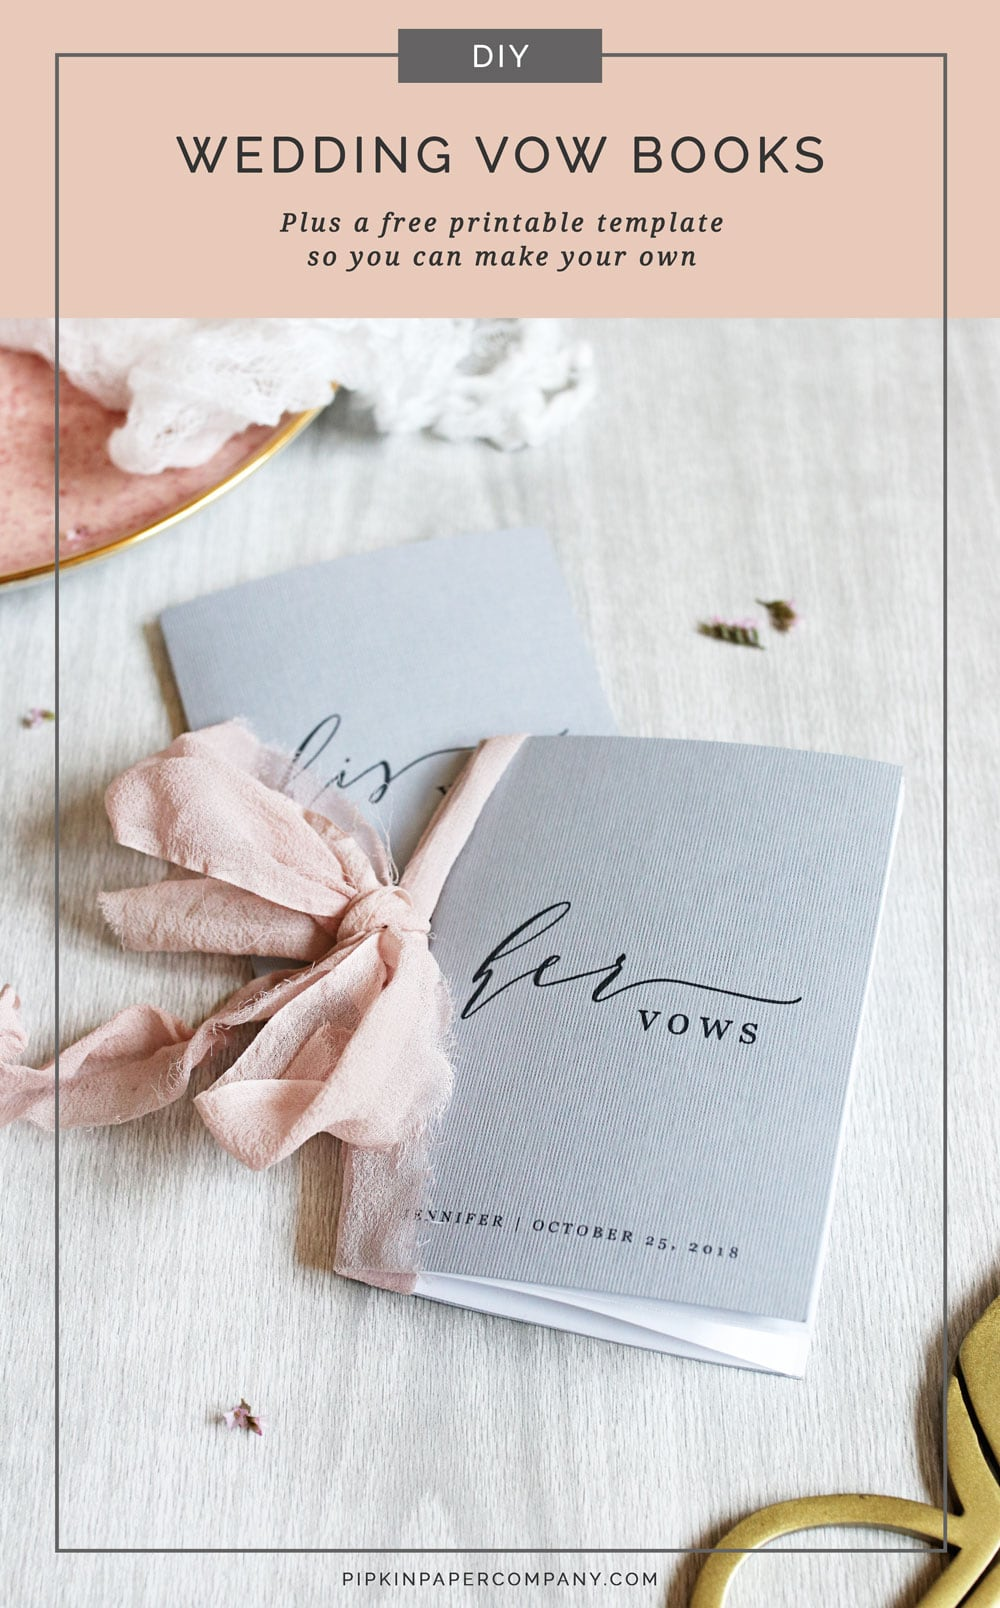 Diy Vow Books For Your Wedding Day Pipkin Paper Company